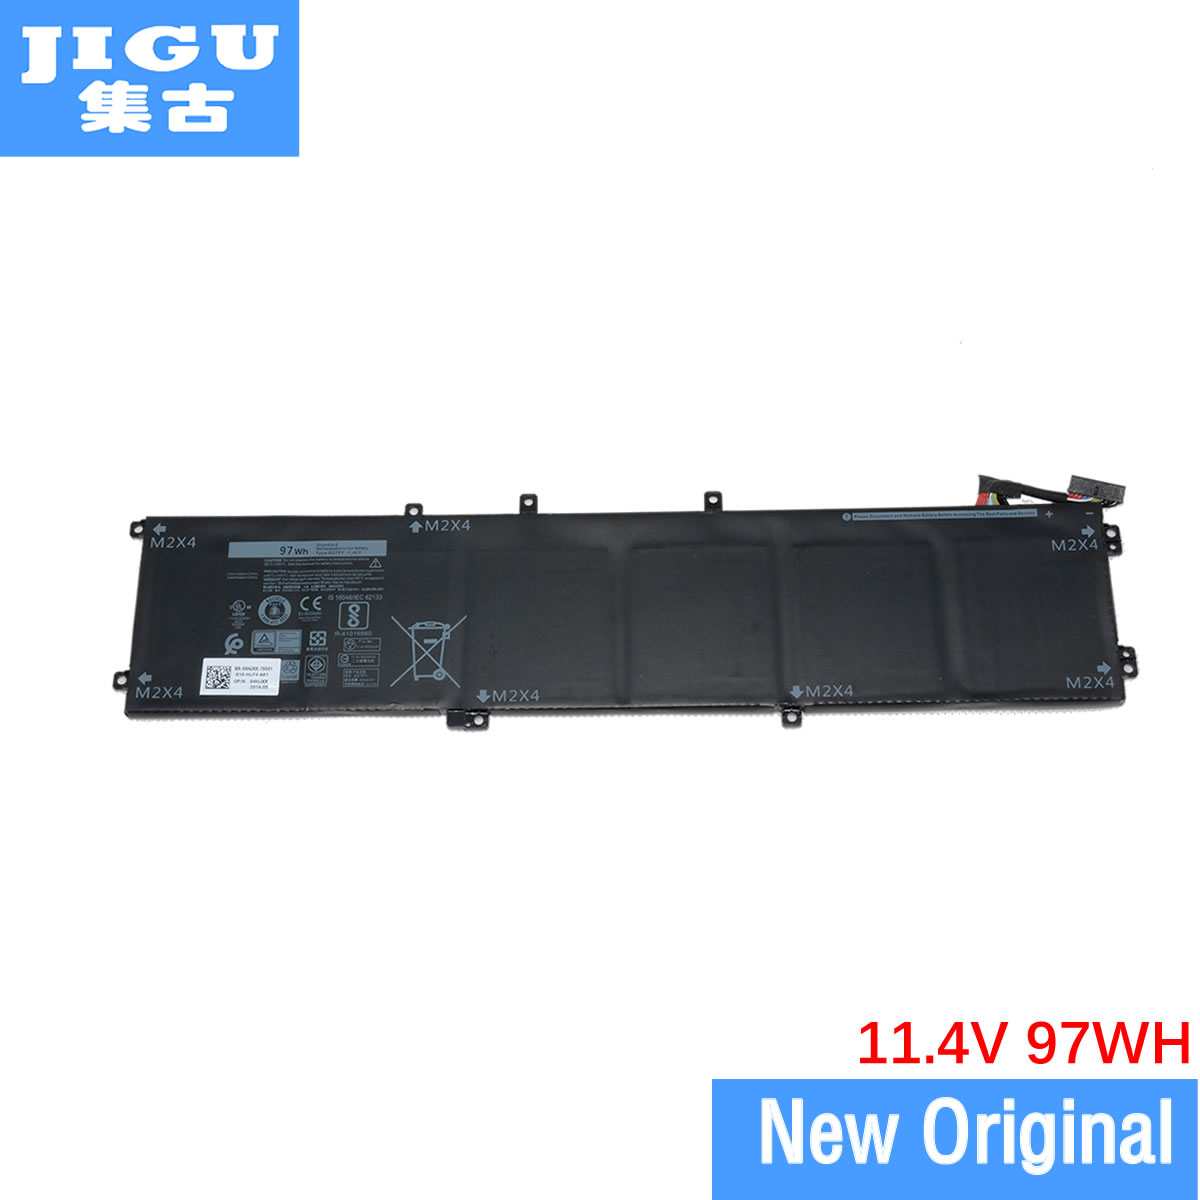 JIGU 11.4V Original Laptop Battery 6GTPY 5XJ28 For Dell Precision 5510 XPS 15 9550 9560 Laptop Tablet BATTERY 97WH image